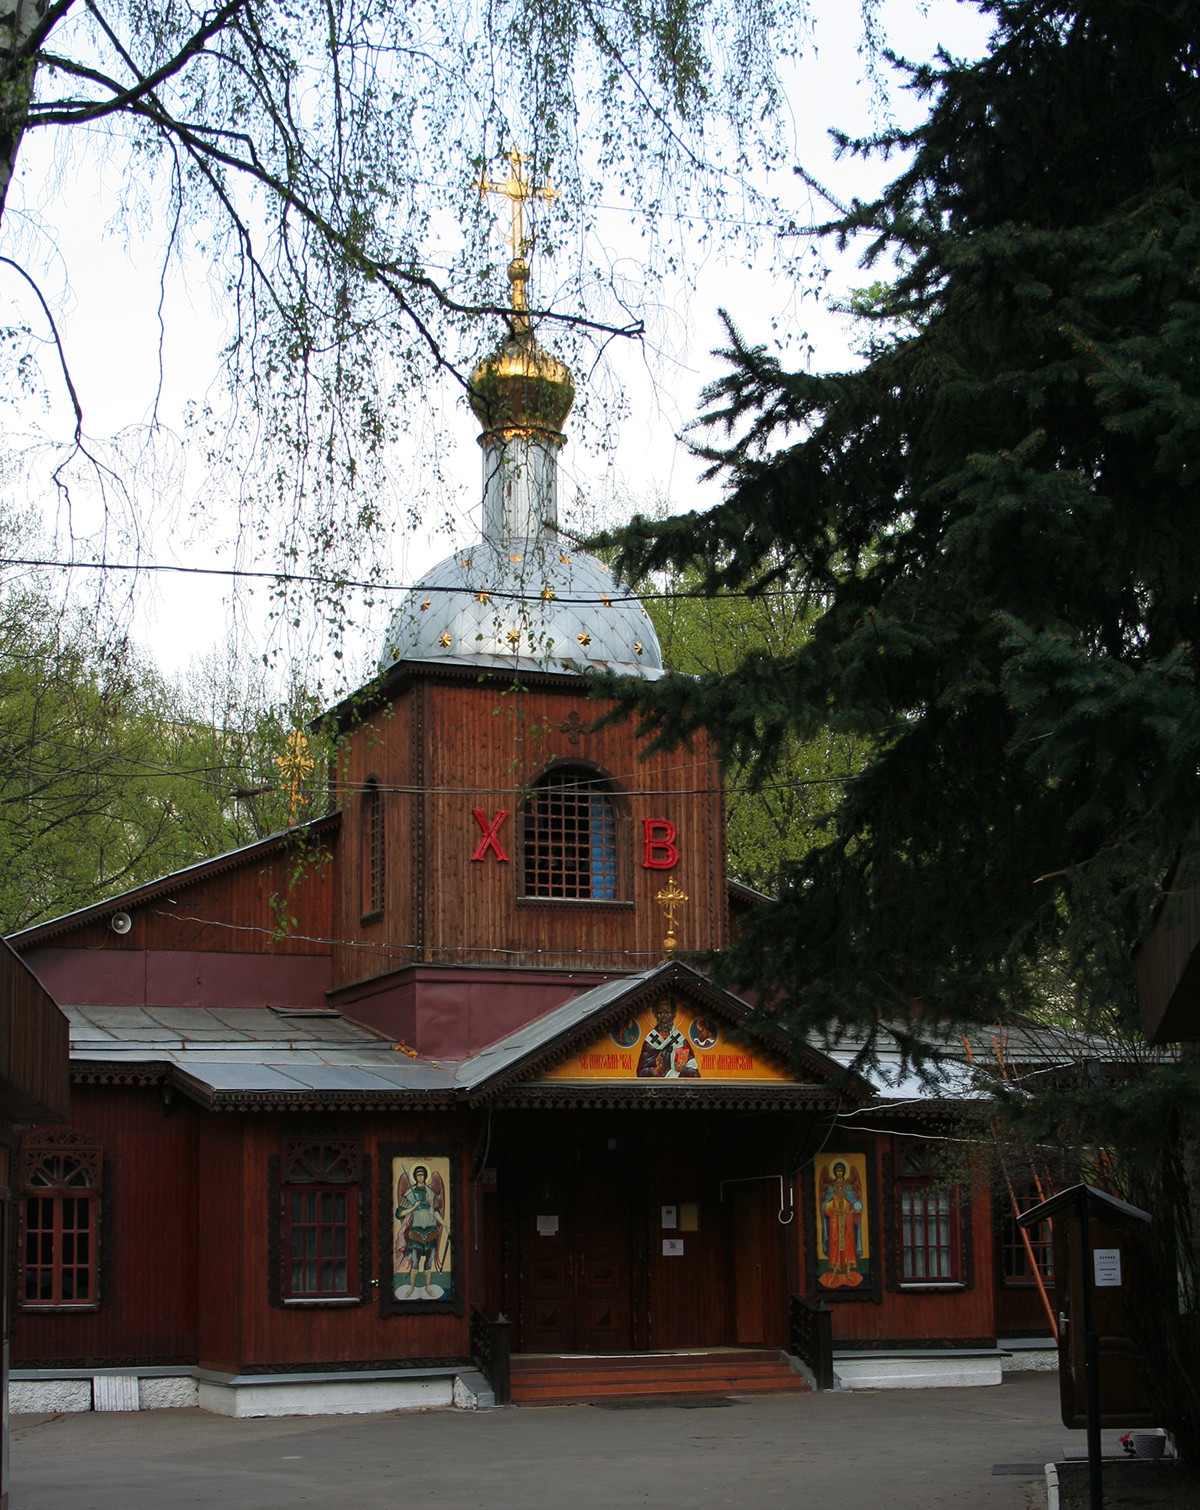 Church of St. Nicholas in Biryulyovo, Moscow, built in 1956